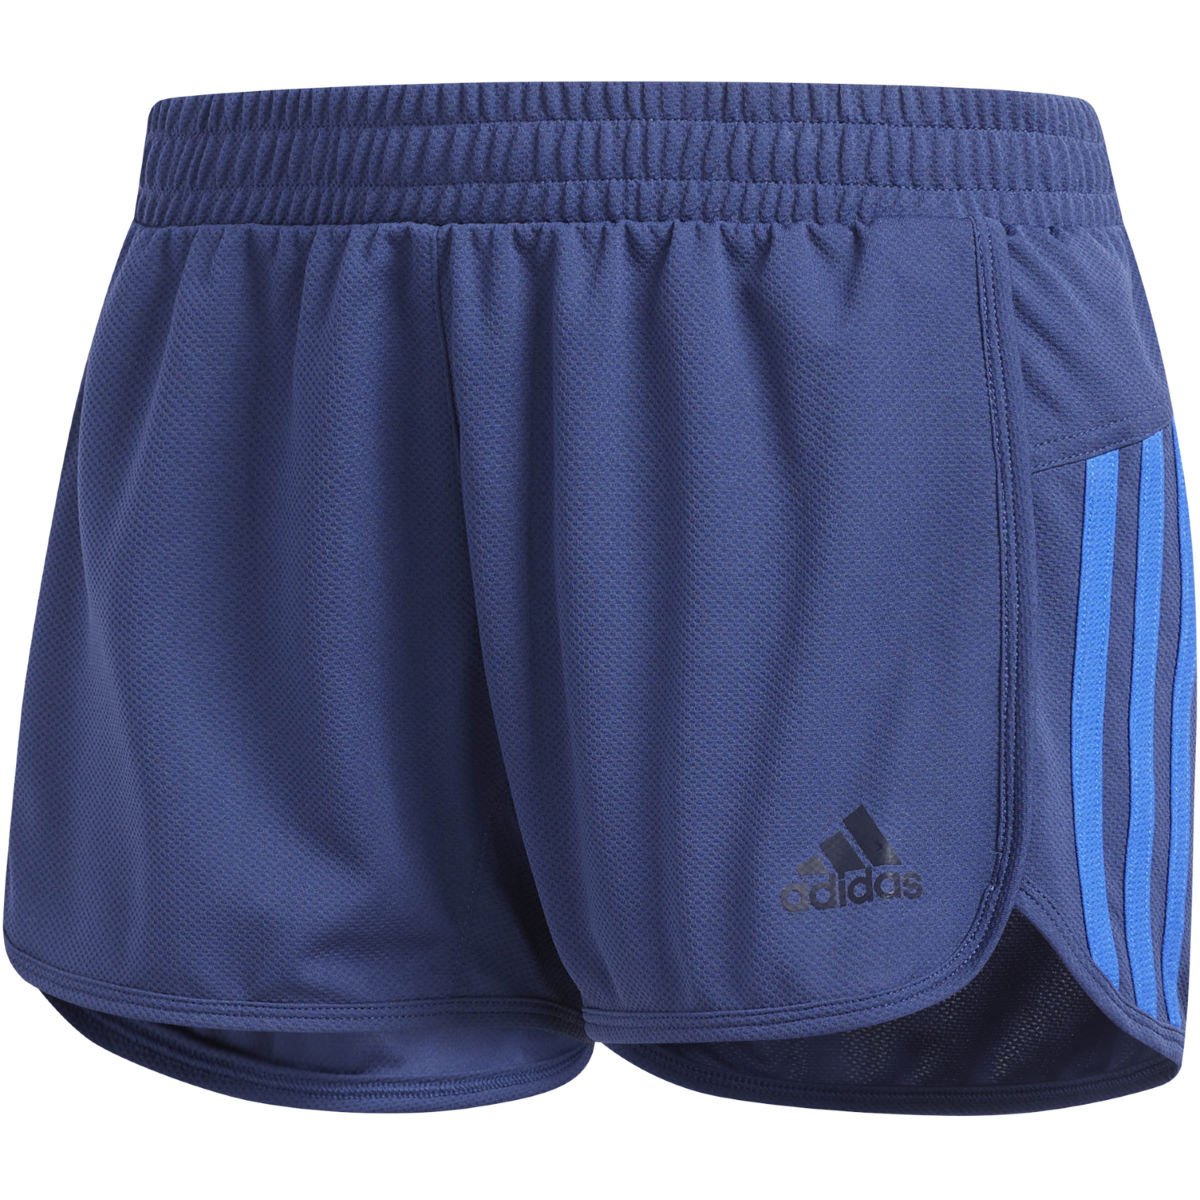 Short Femme adidas D2M (en mailles) - Medium NOBLE INDIGO